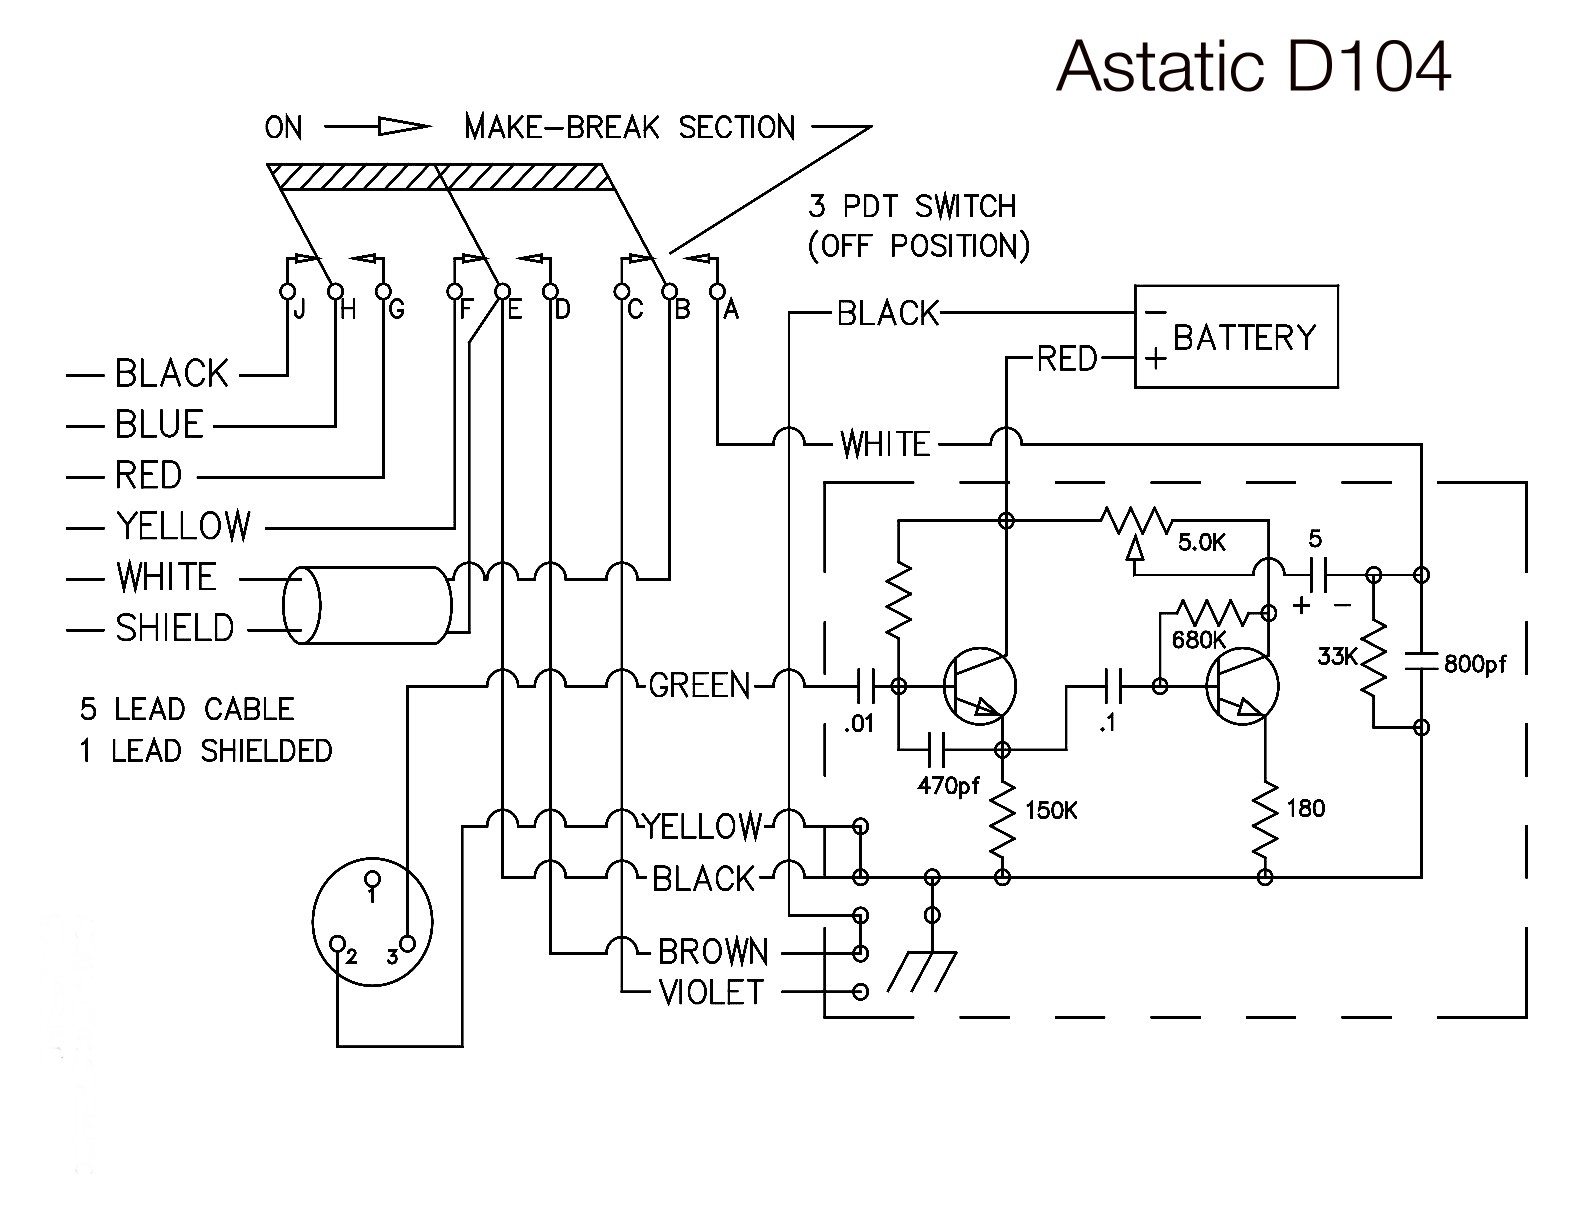 d104 astatic d104 wiring for icom radios astatic d104 wiring diagram